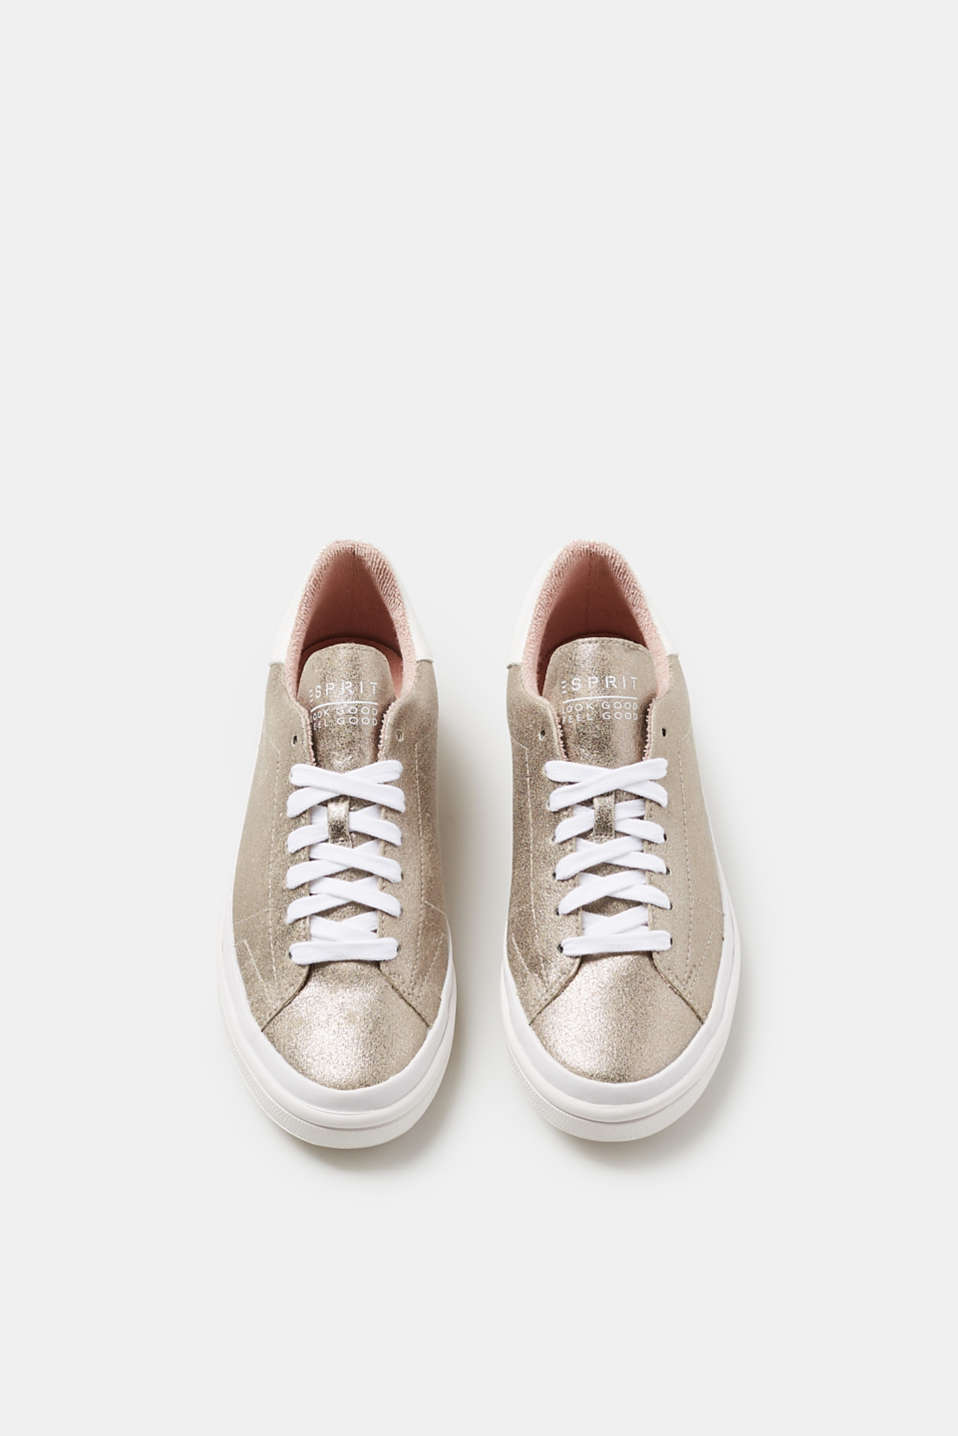 Trendy trainers in a metallic finish